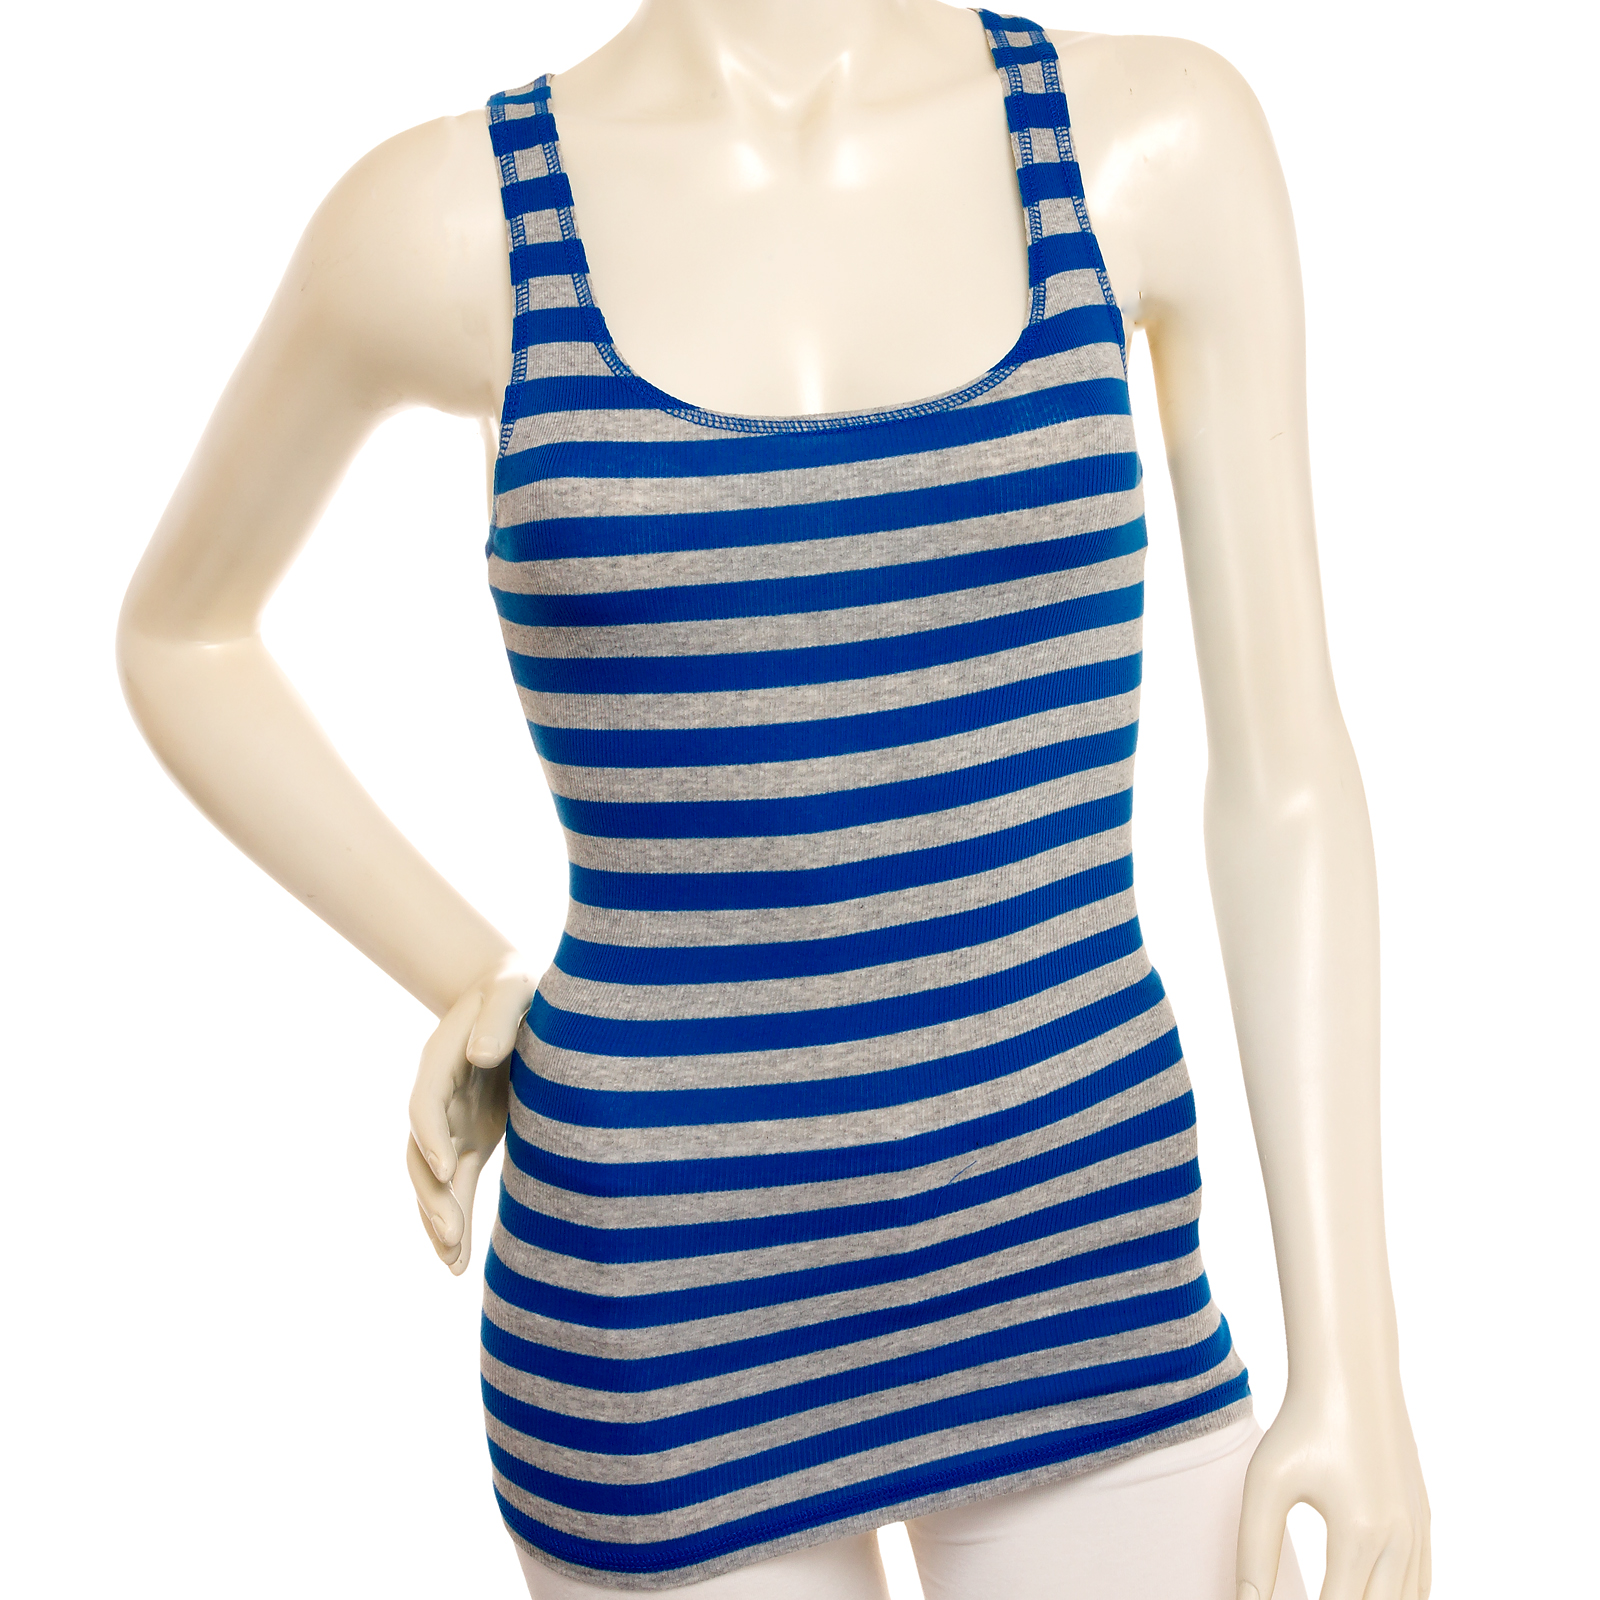 NEW Womens Cotton Blend Striped Racerback Ribbed Tank Top Shirt